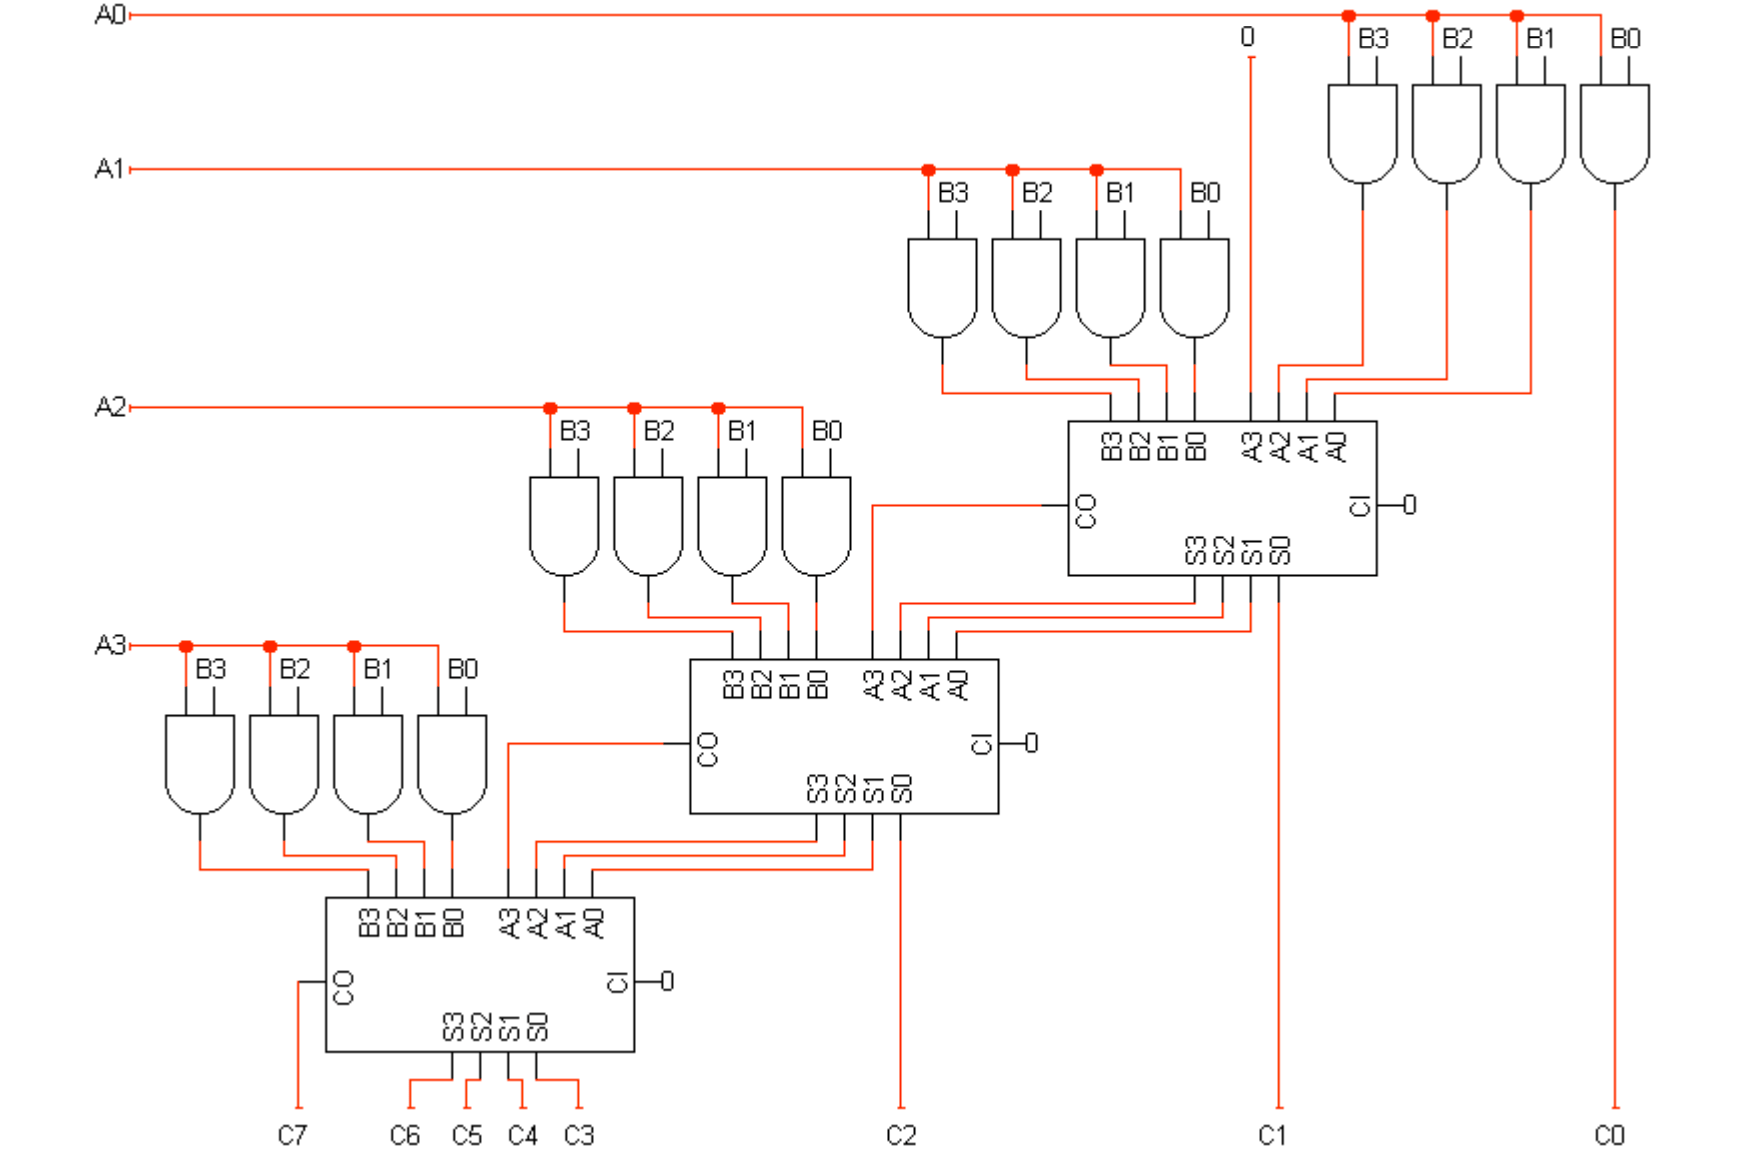 Remarkable C33 De Rb20 Wiring Diagram Wiring Diagram Database Wiring Cloud Oideiuggs Outletorg